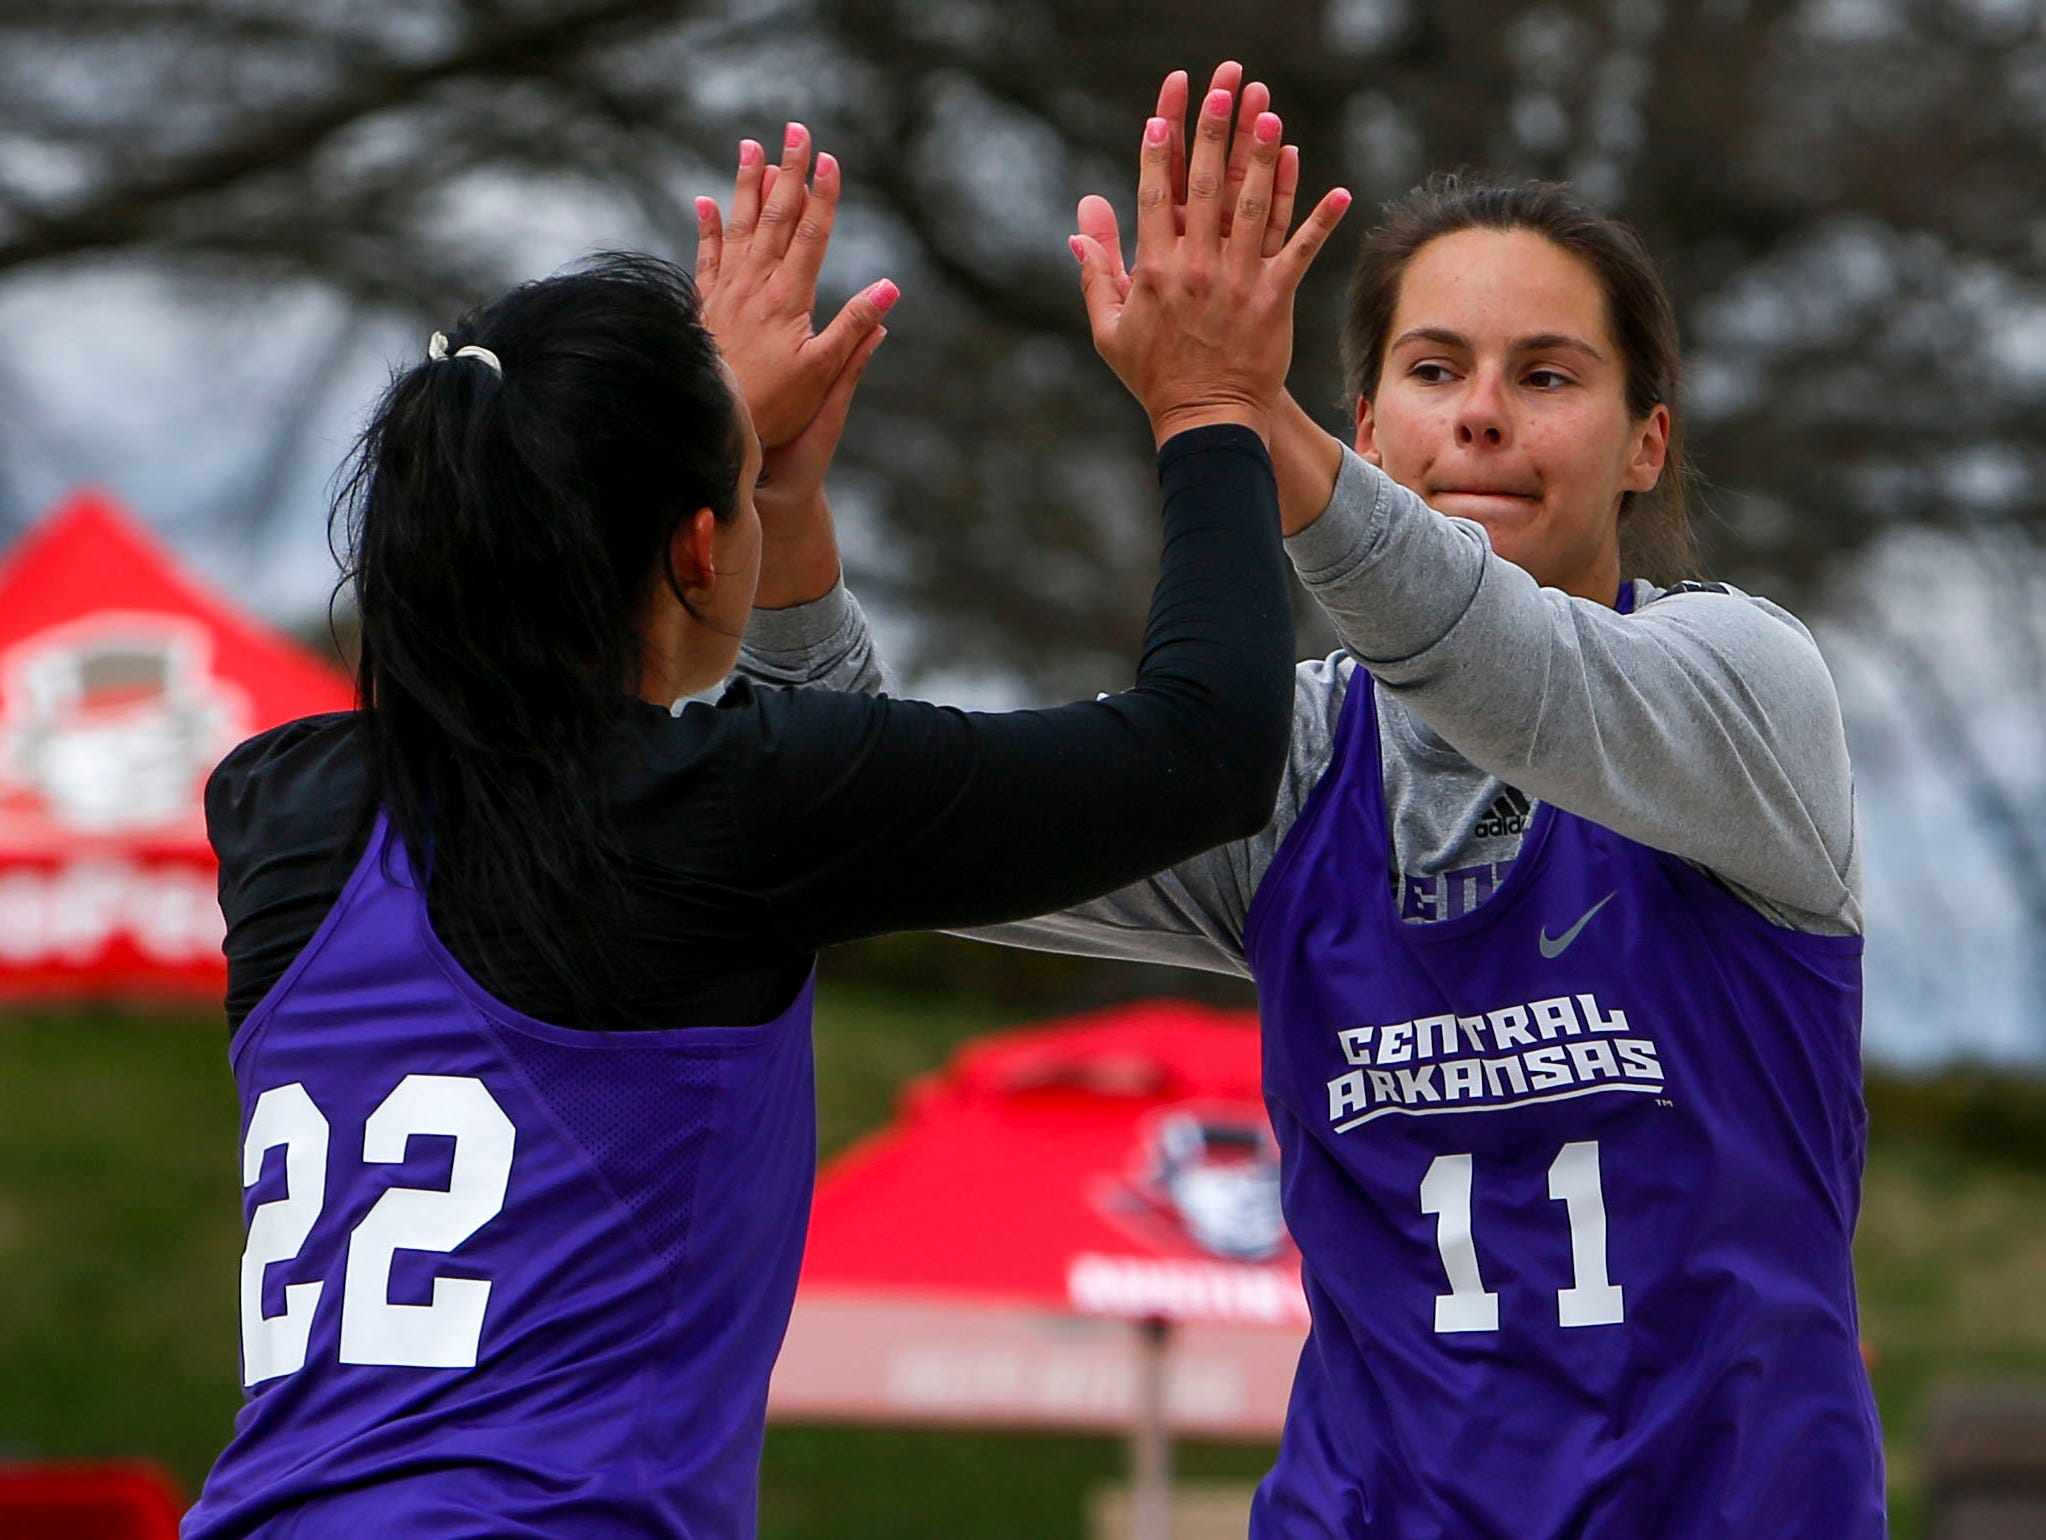 Central Arkansas players high five after scoring a point at Winfield Dunn Center lawn in Clarksville, Tenn., on Friday, March 15, 2019.